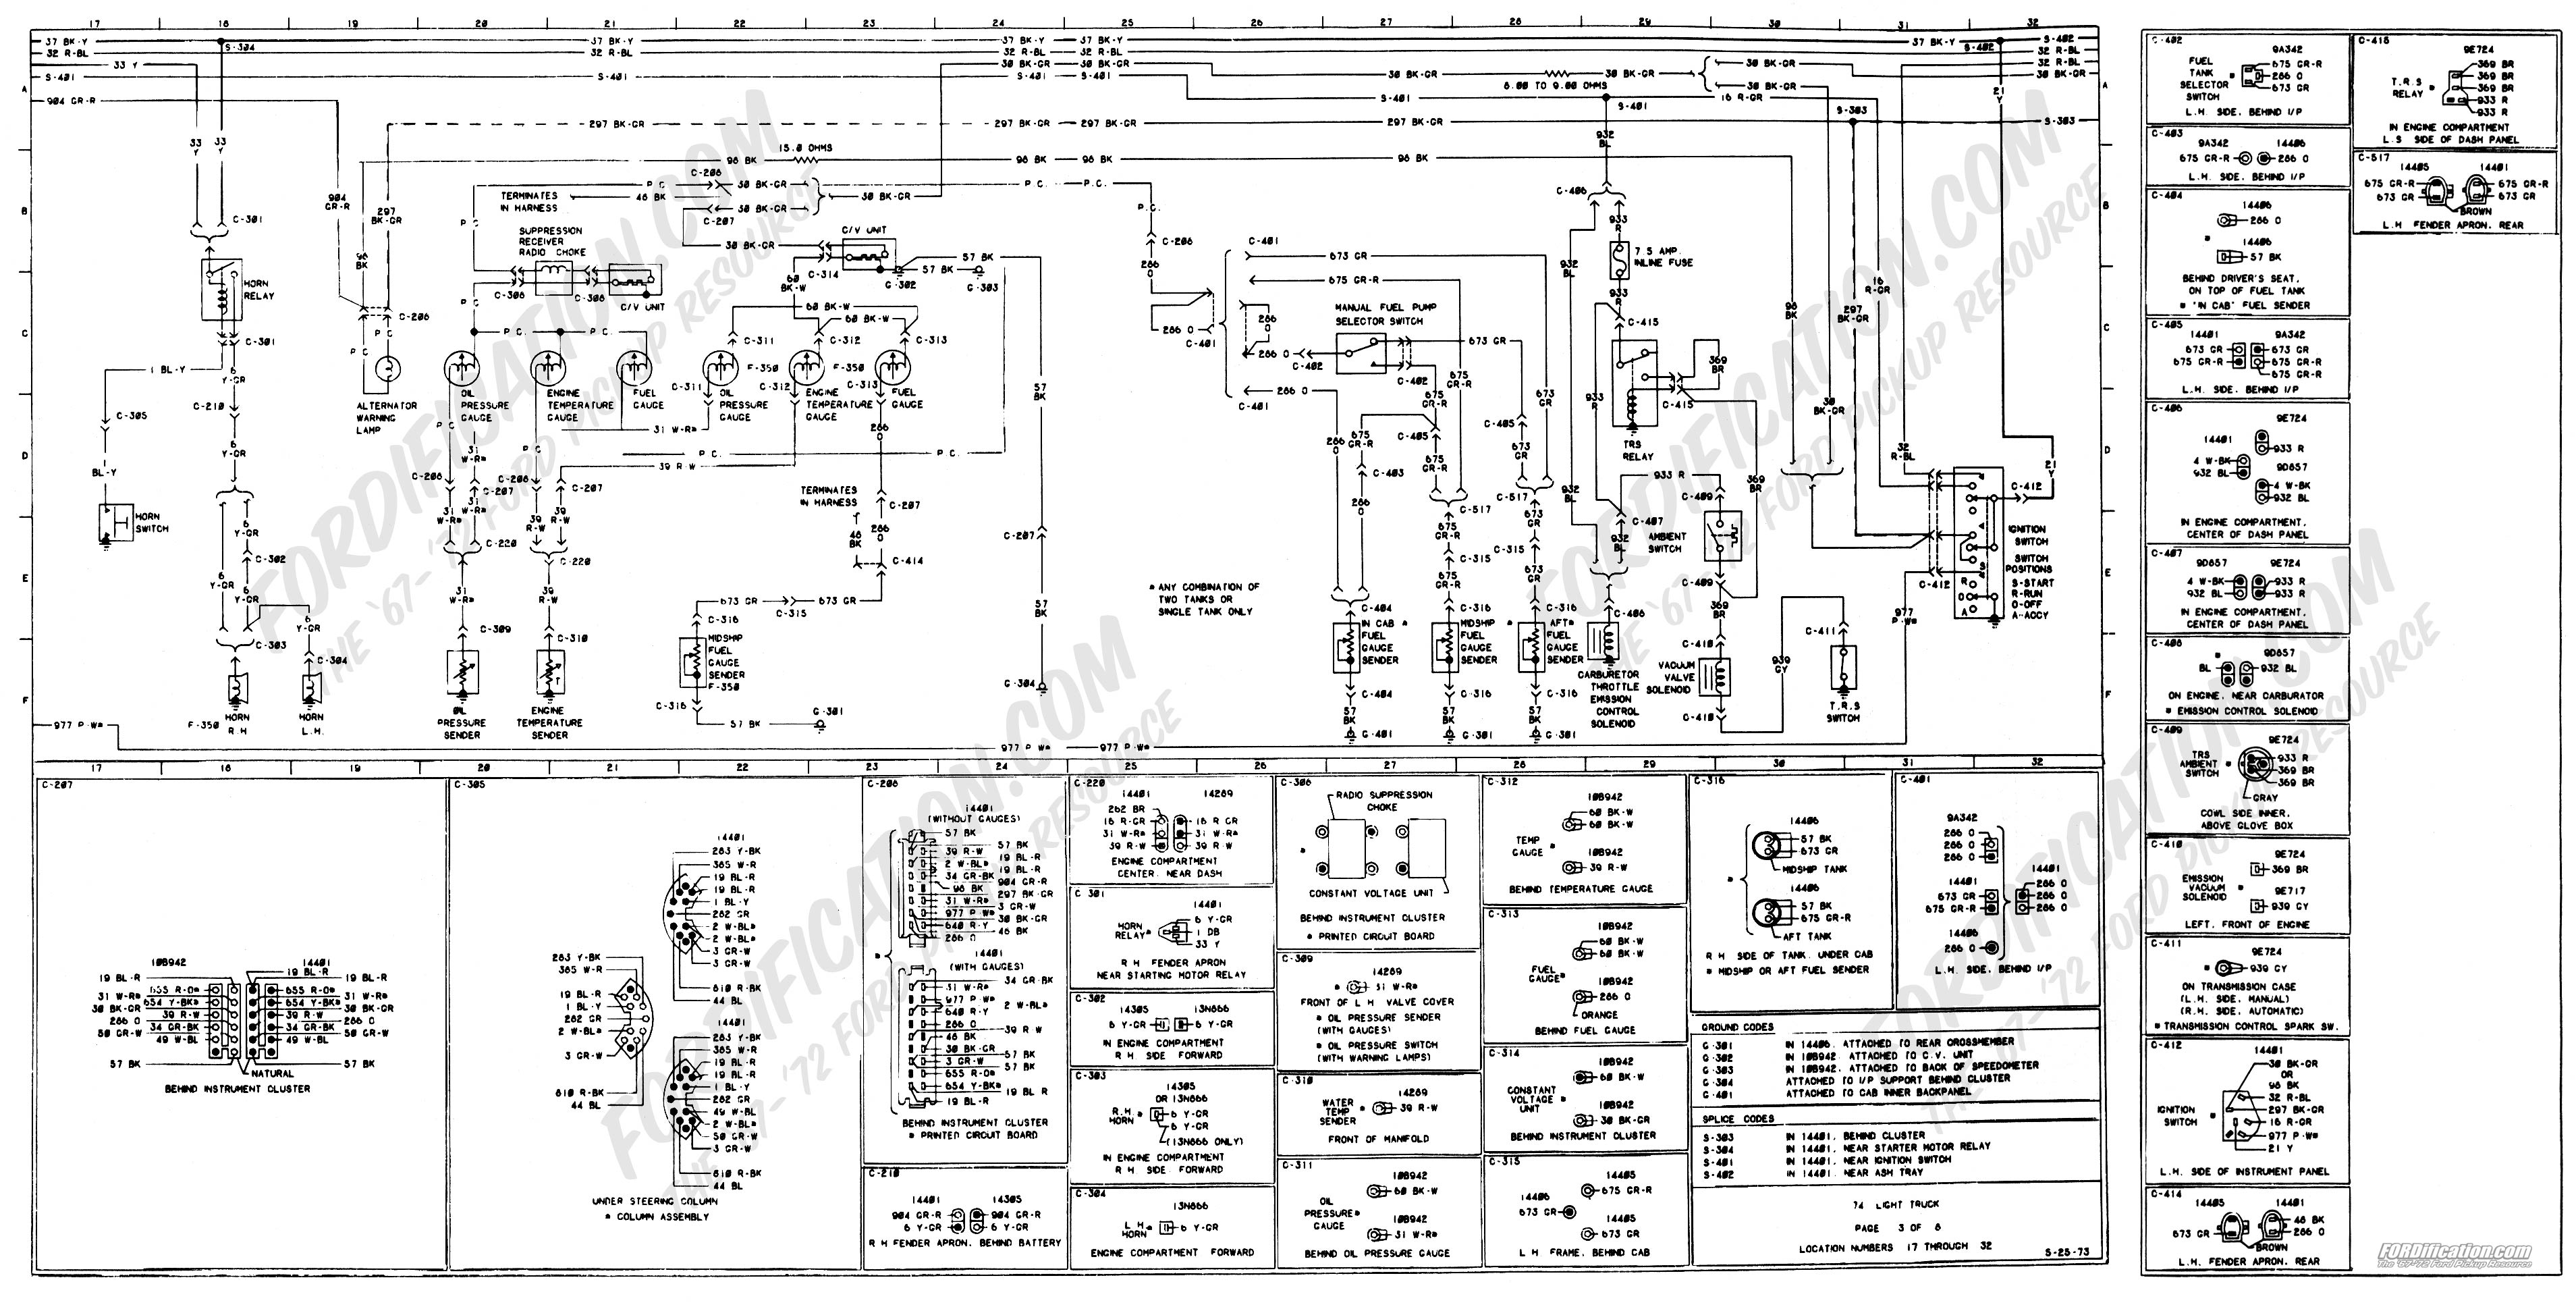 1973 1979 ford truck wiring diagrams schematics fordification net rh  fordification net 1981 Ford Ignition Module